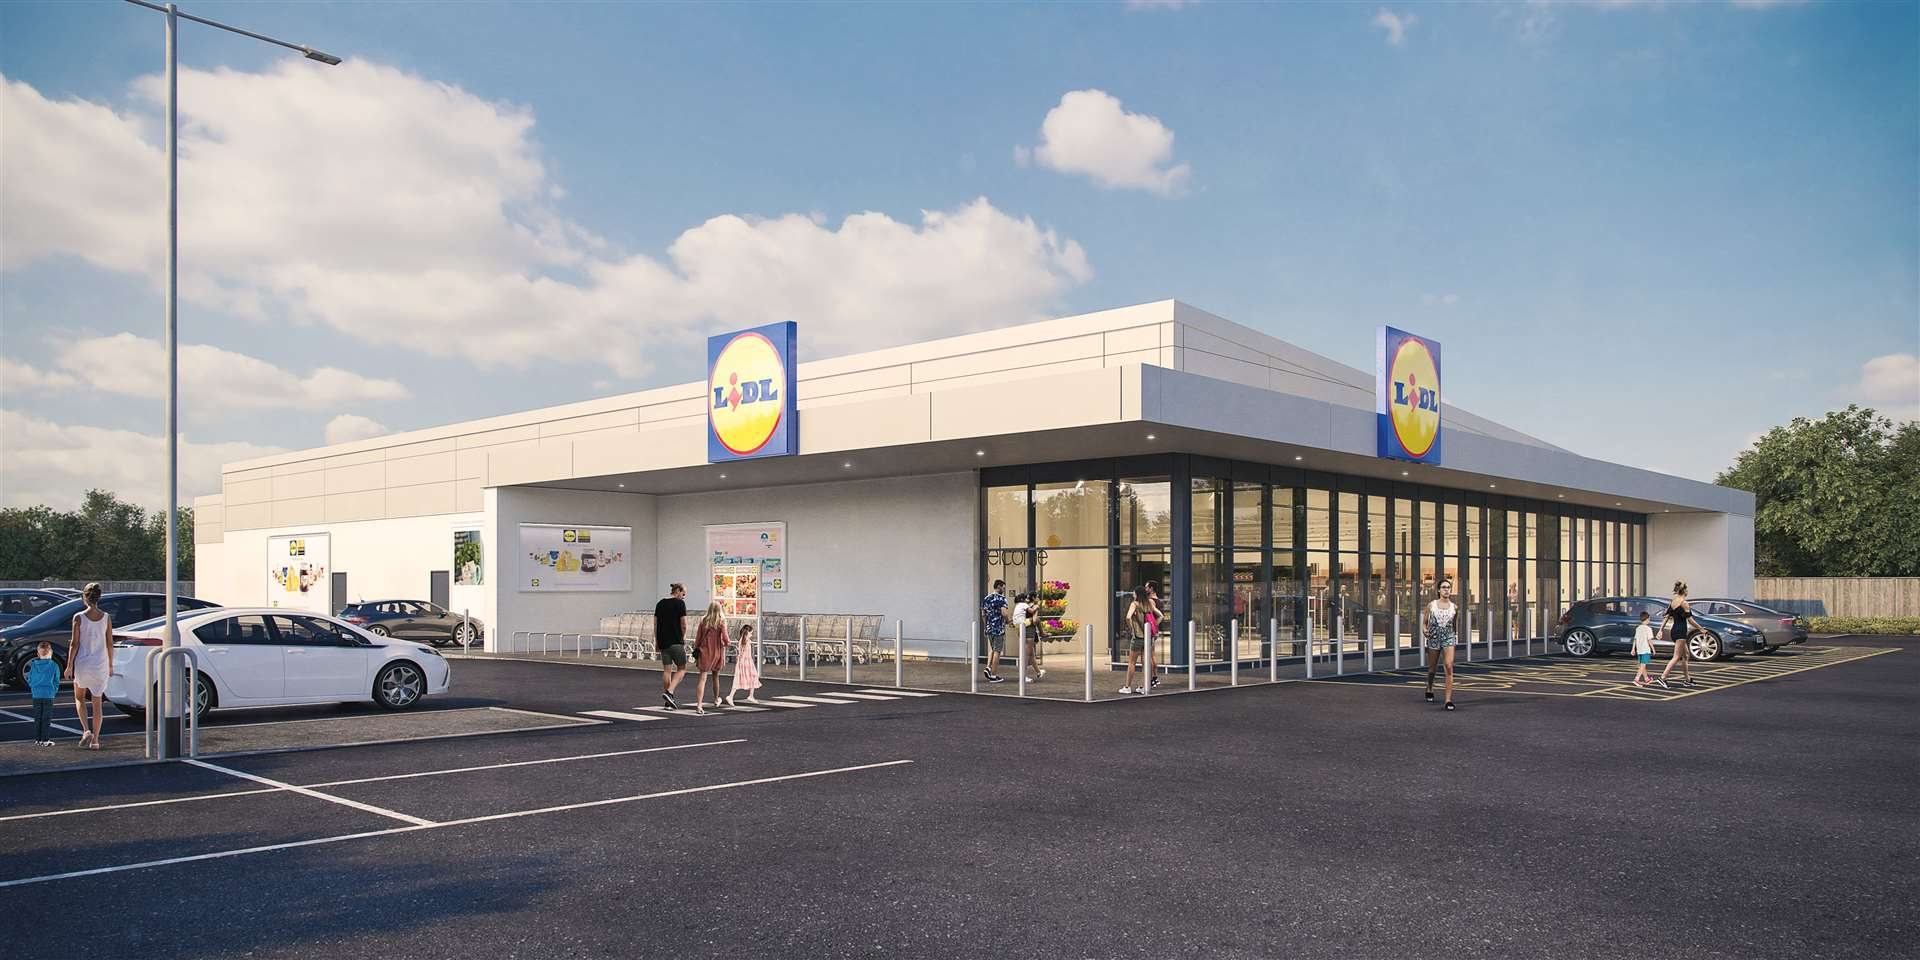 Artist impressions of what the multi-million pound development will look like if approved. Picture: Lidl UK